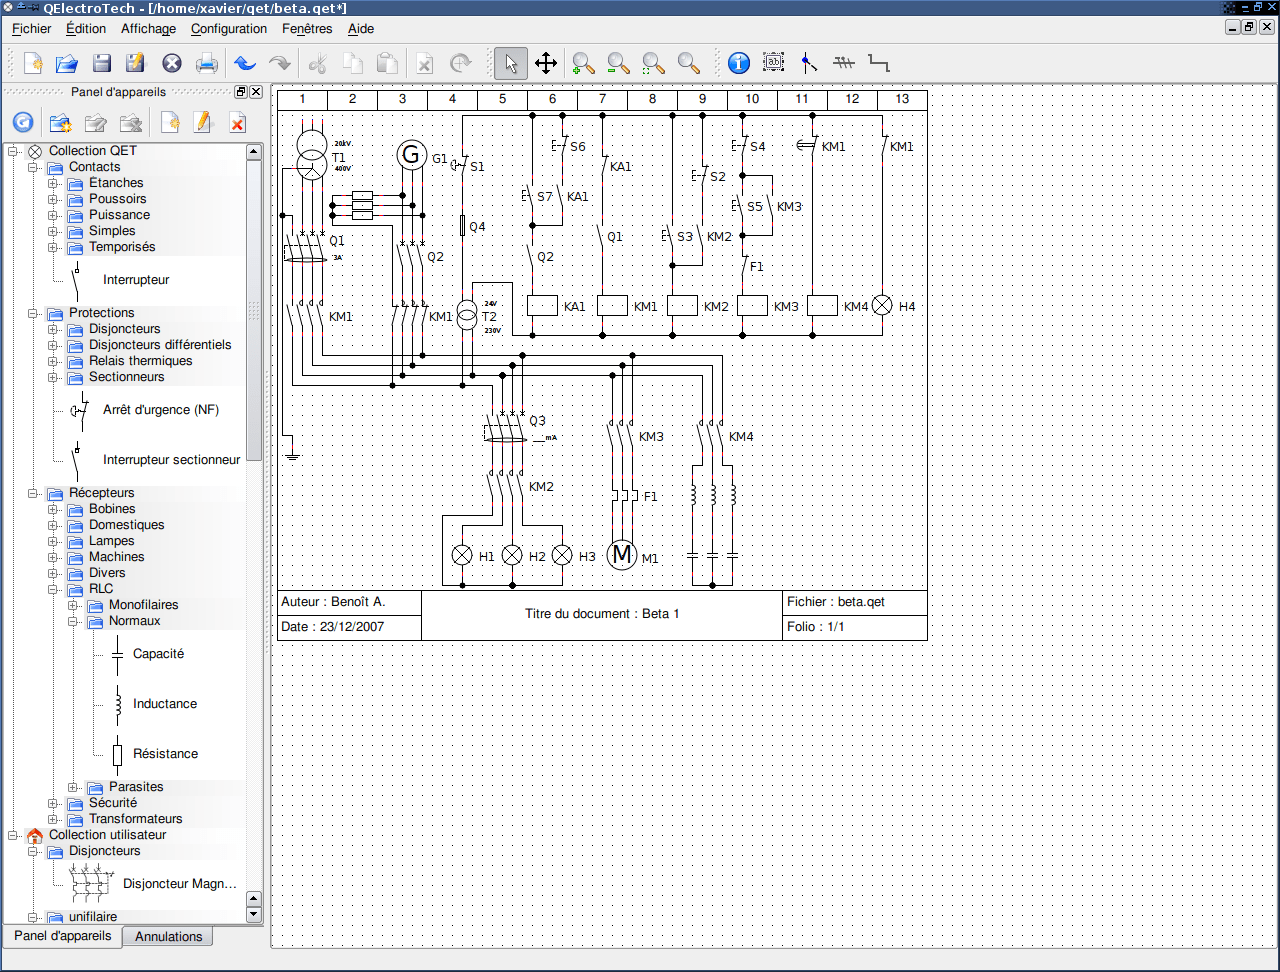 QElectrotech : Open Source Electric Diagrams Application